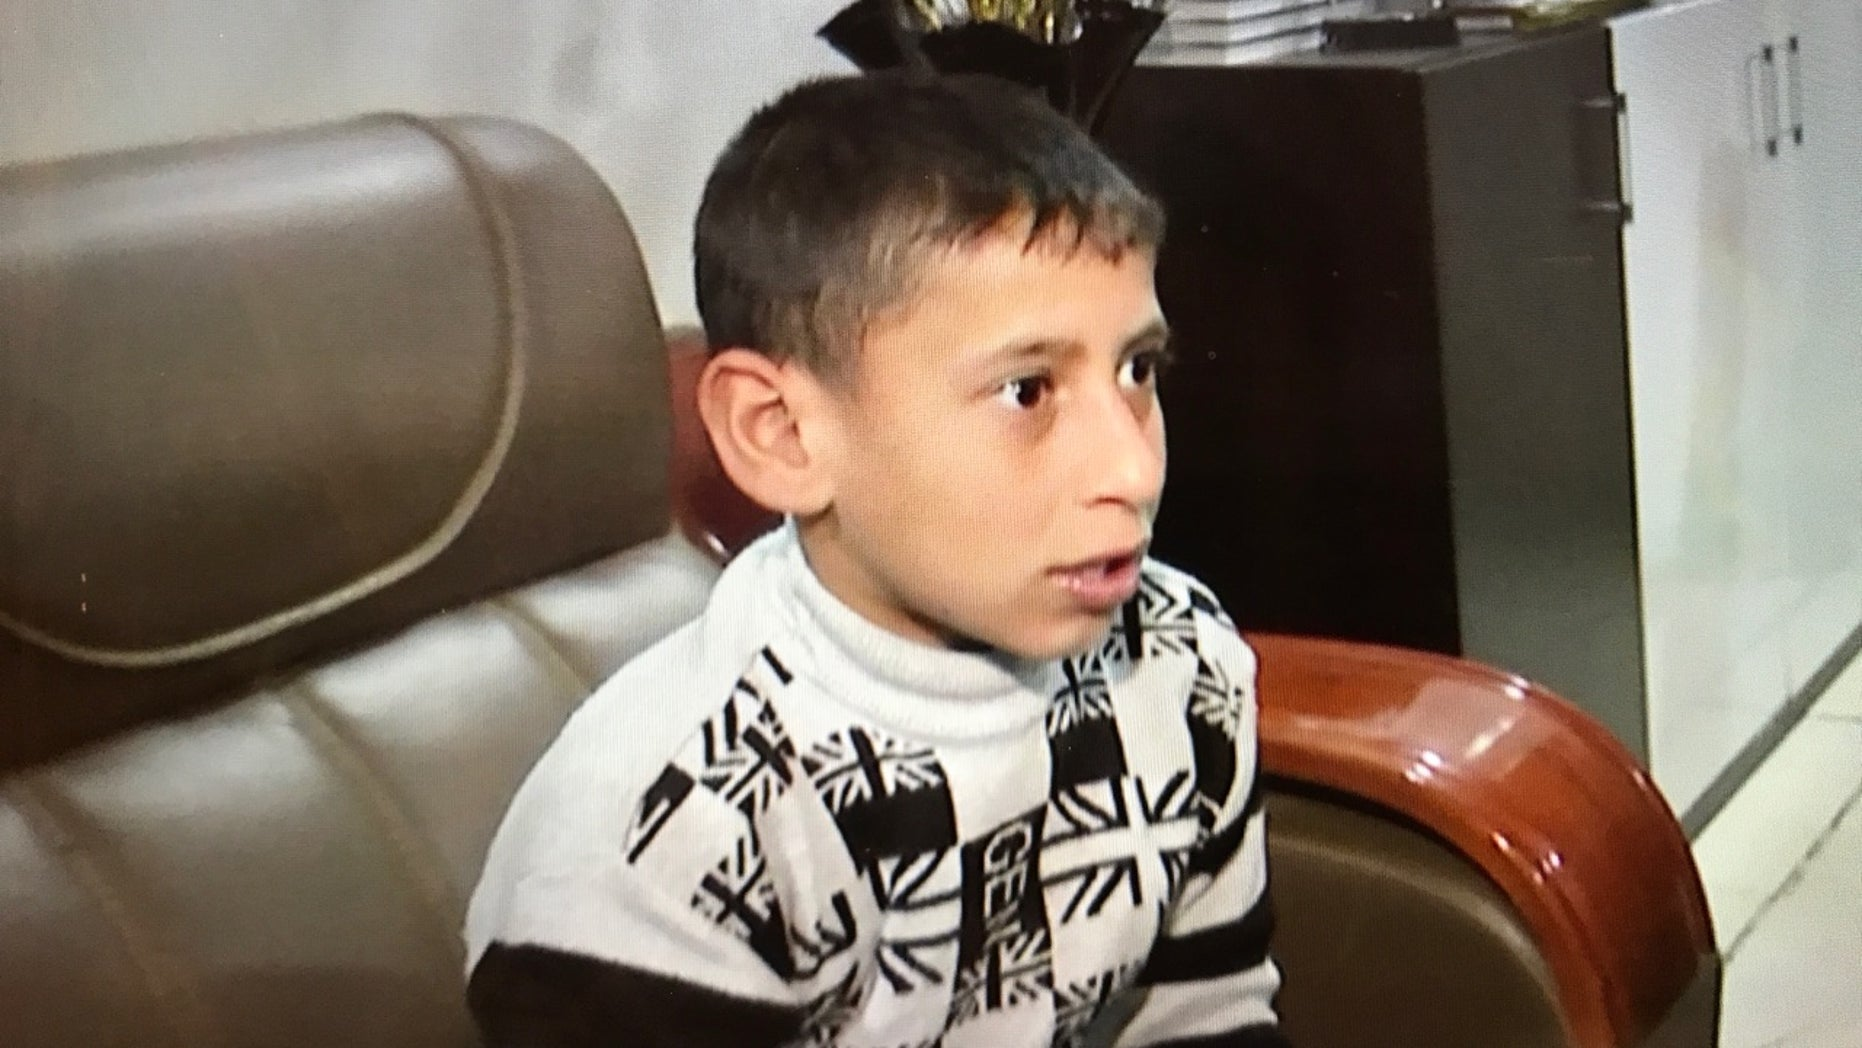 Akram, 8, was a prisoner of ISIS for two and a half years.